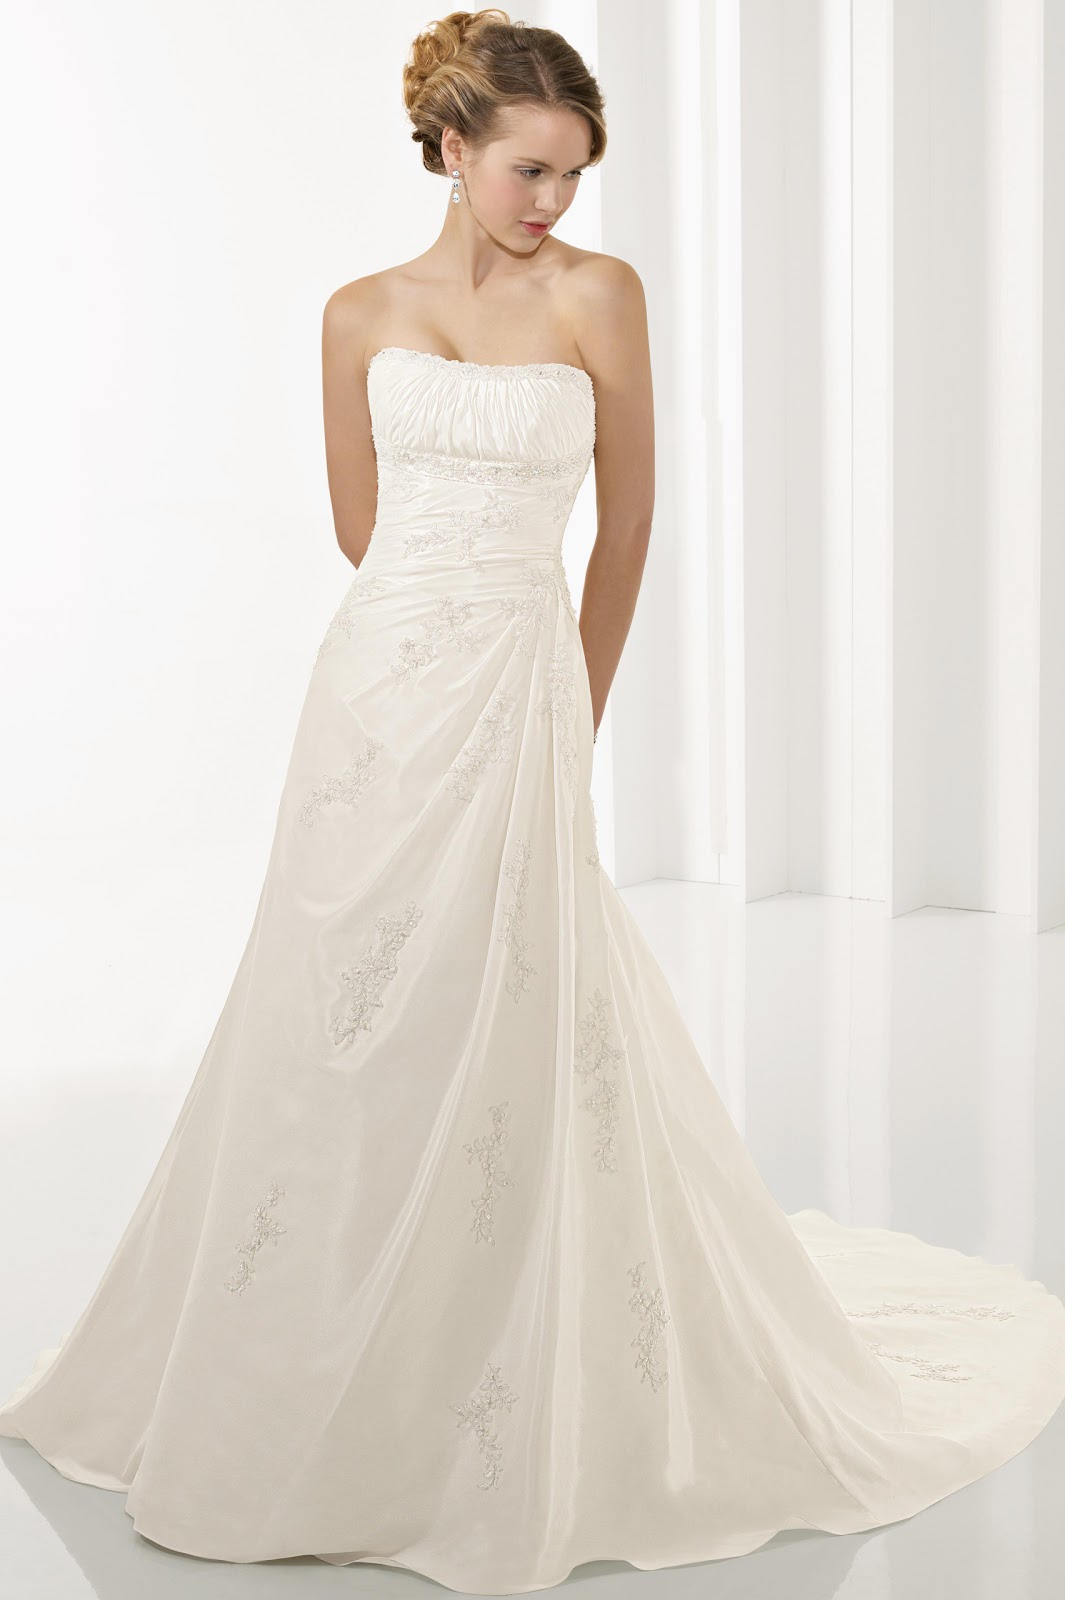 Wedding dresses styles guide wedding dresses in jax for Wedding dresses miami stores